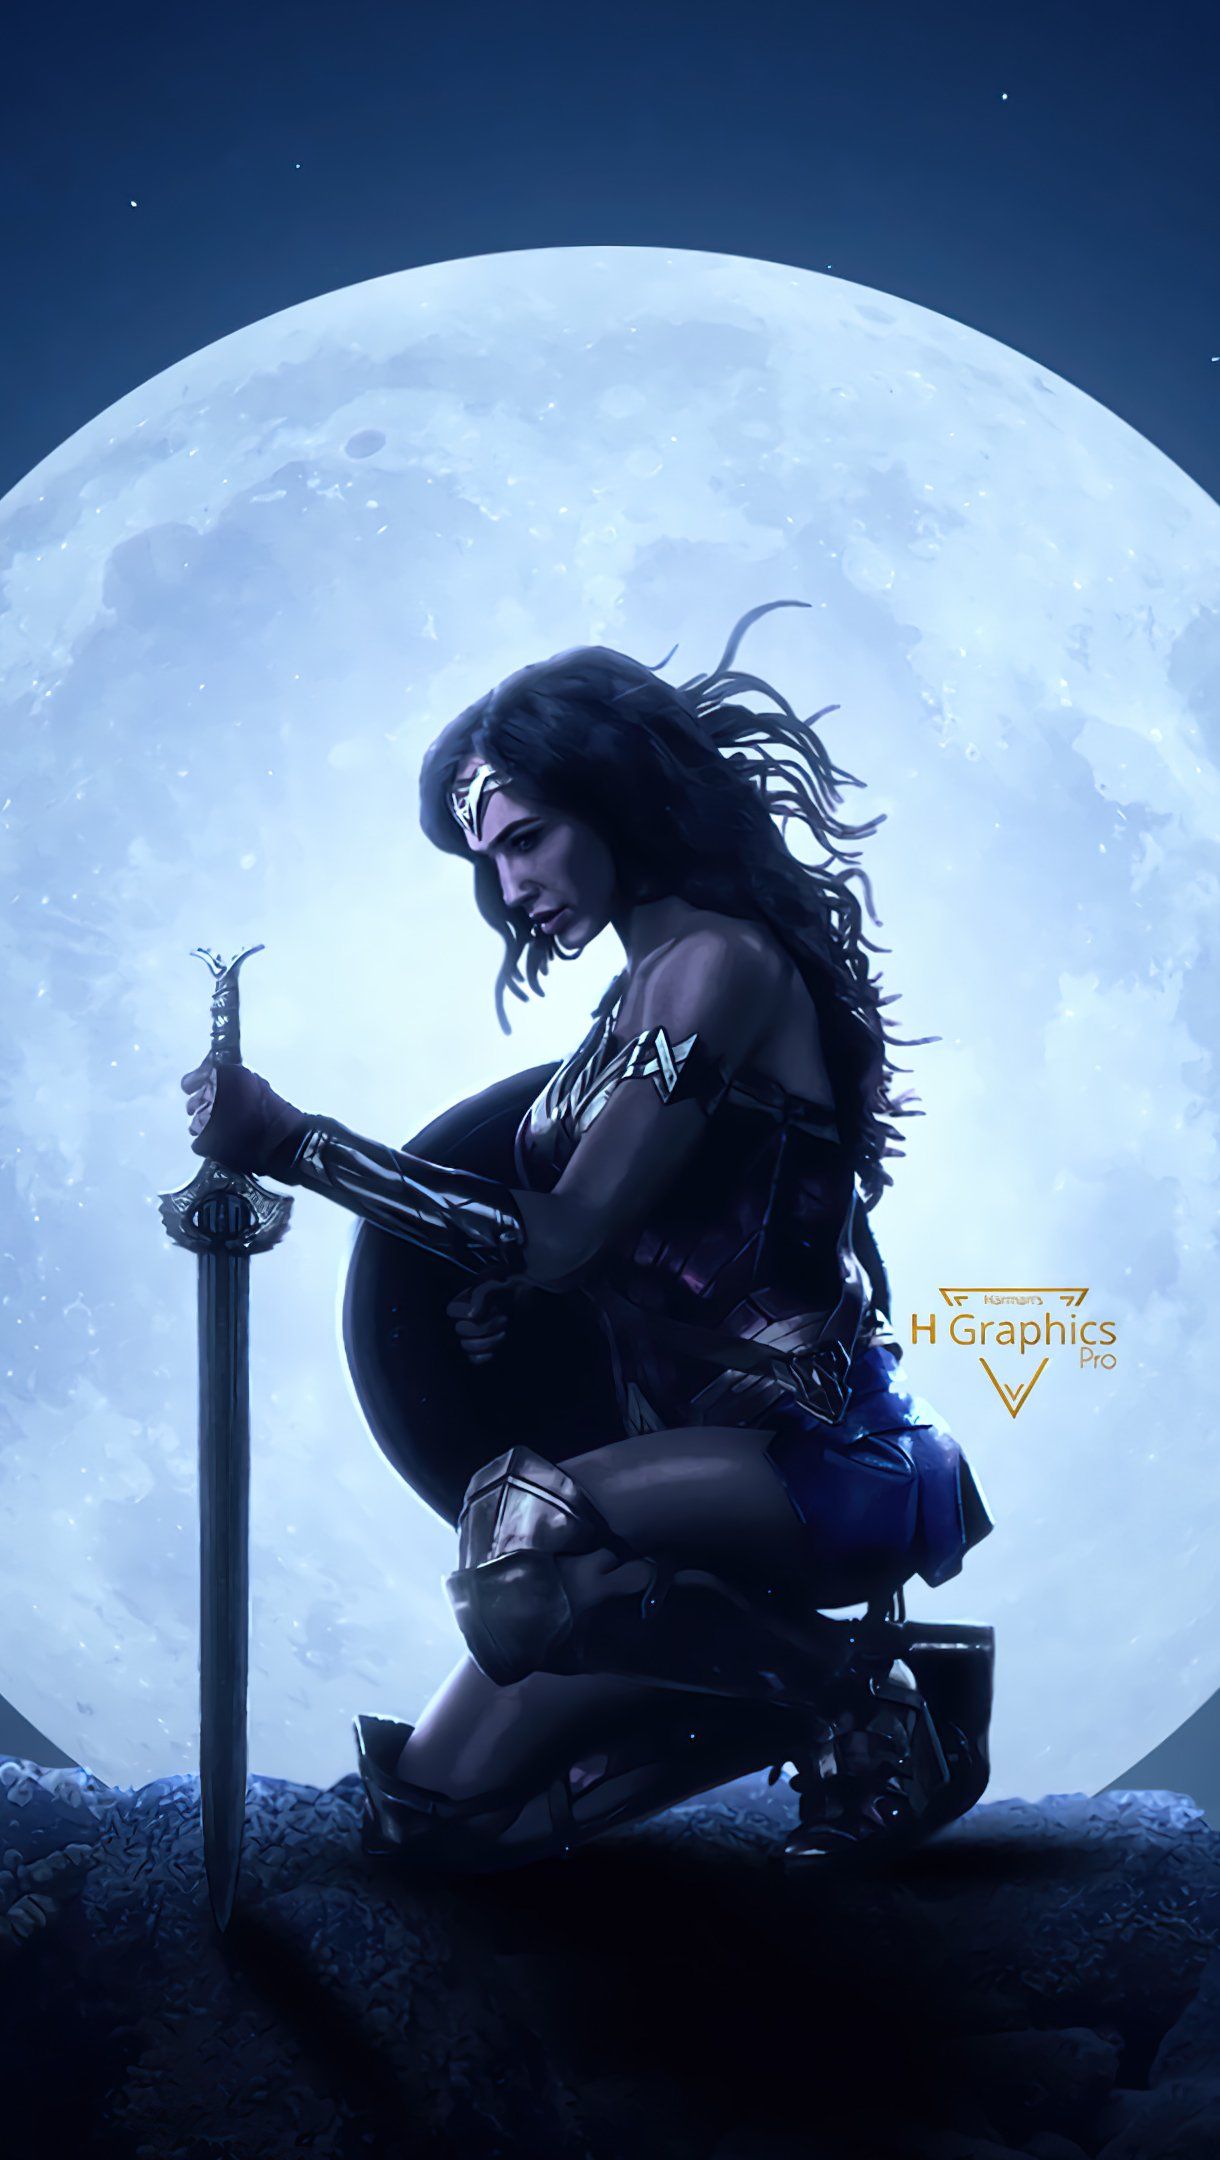 Wallpaper Wonder woman with moon in the background Vertical